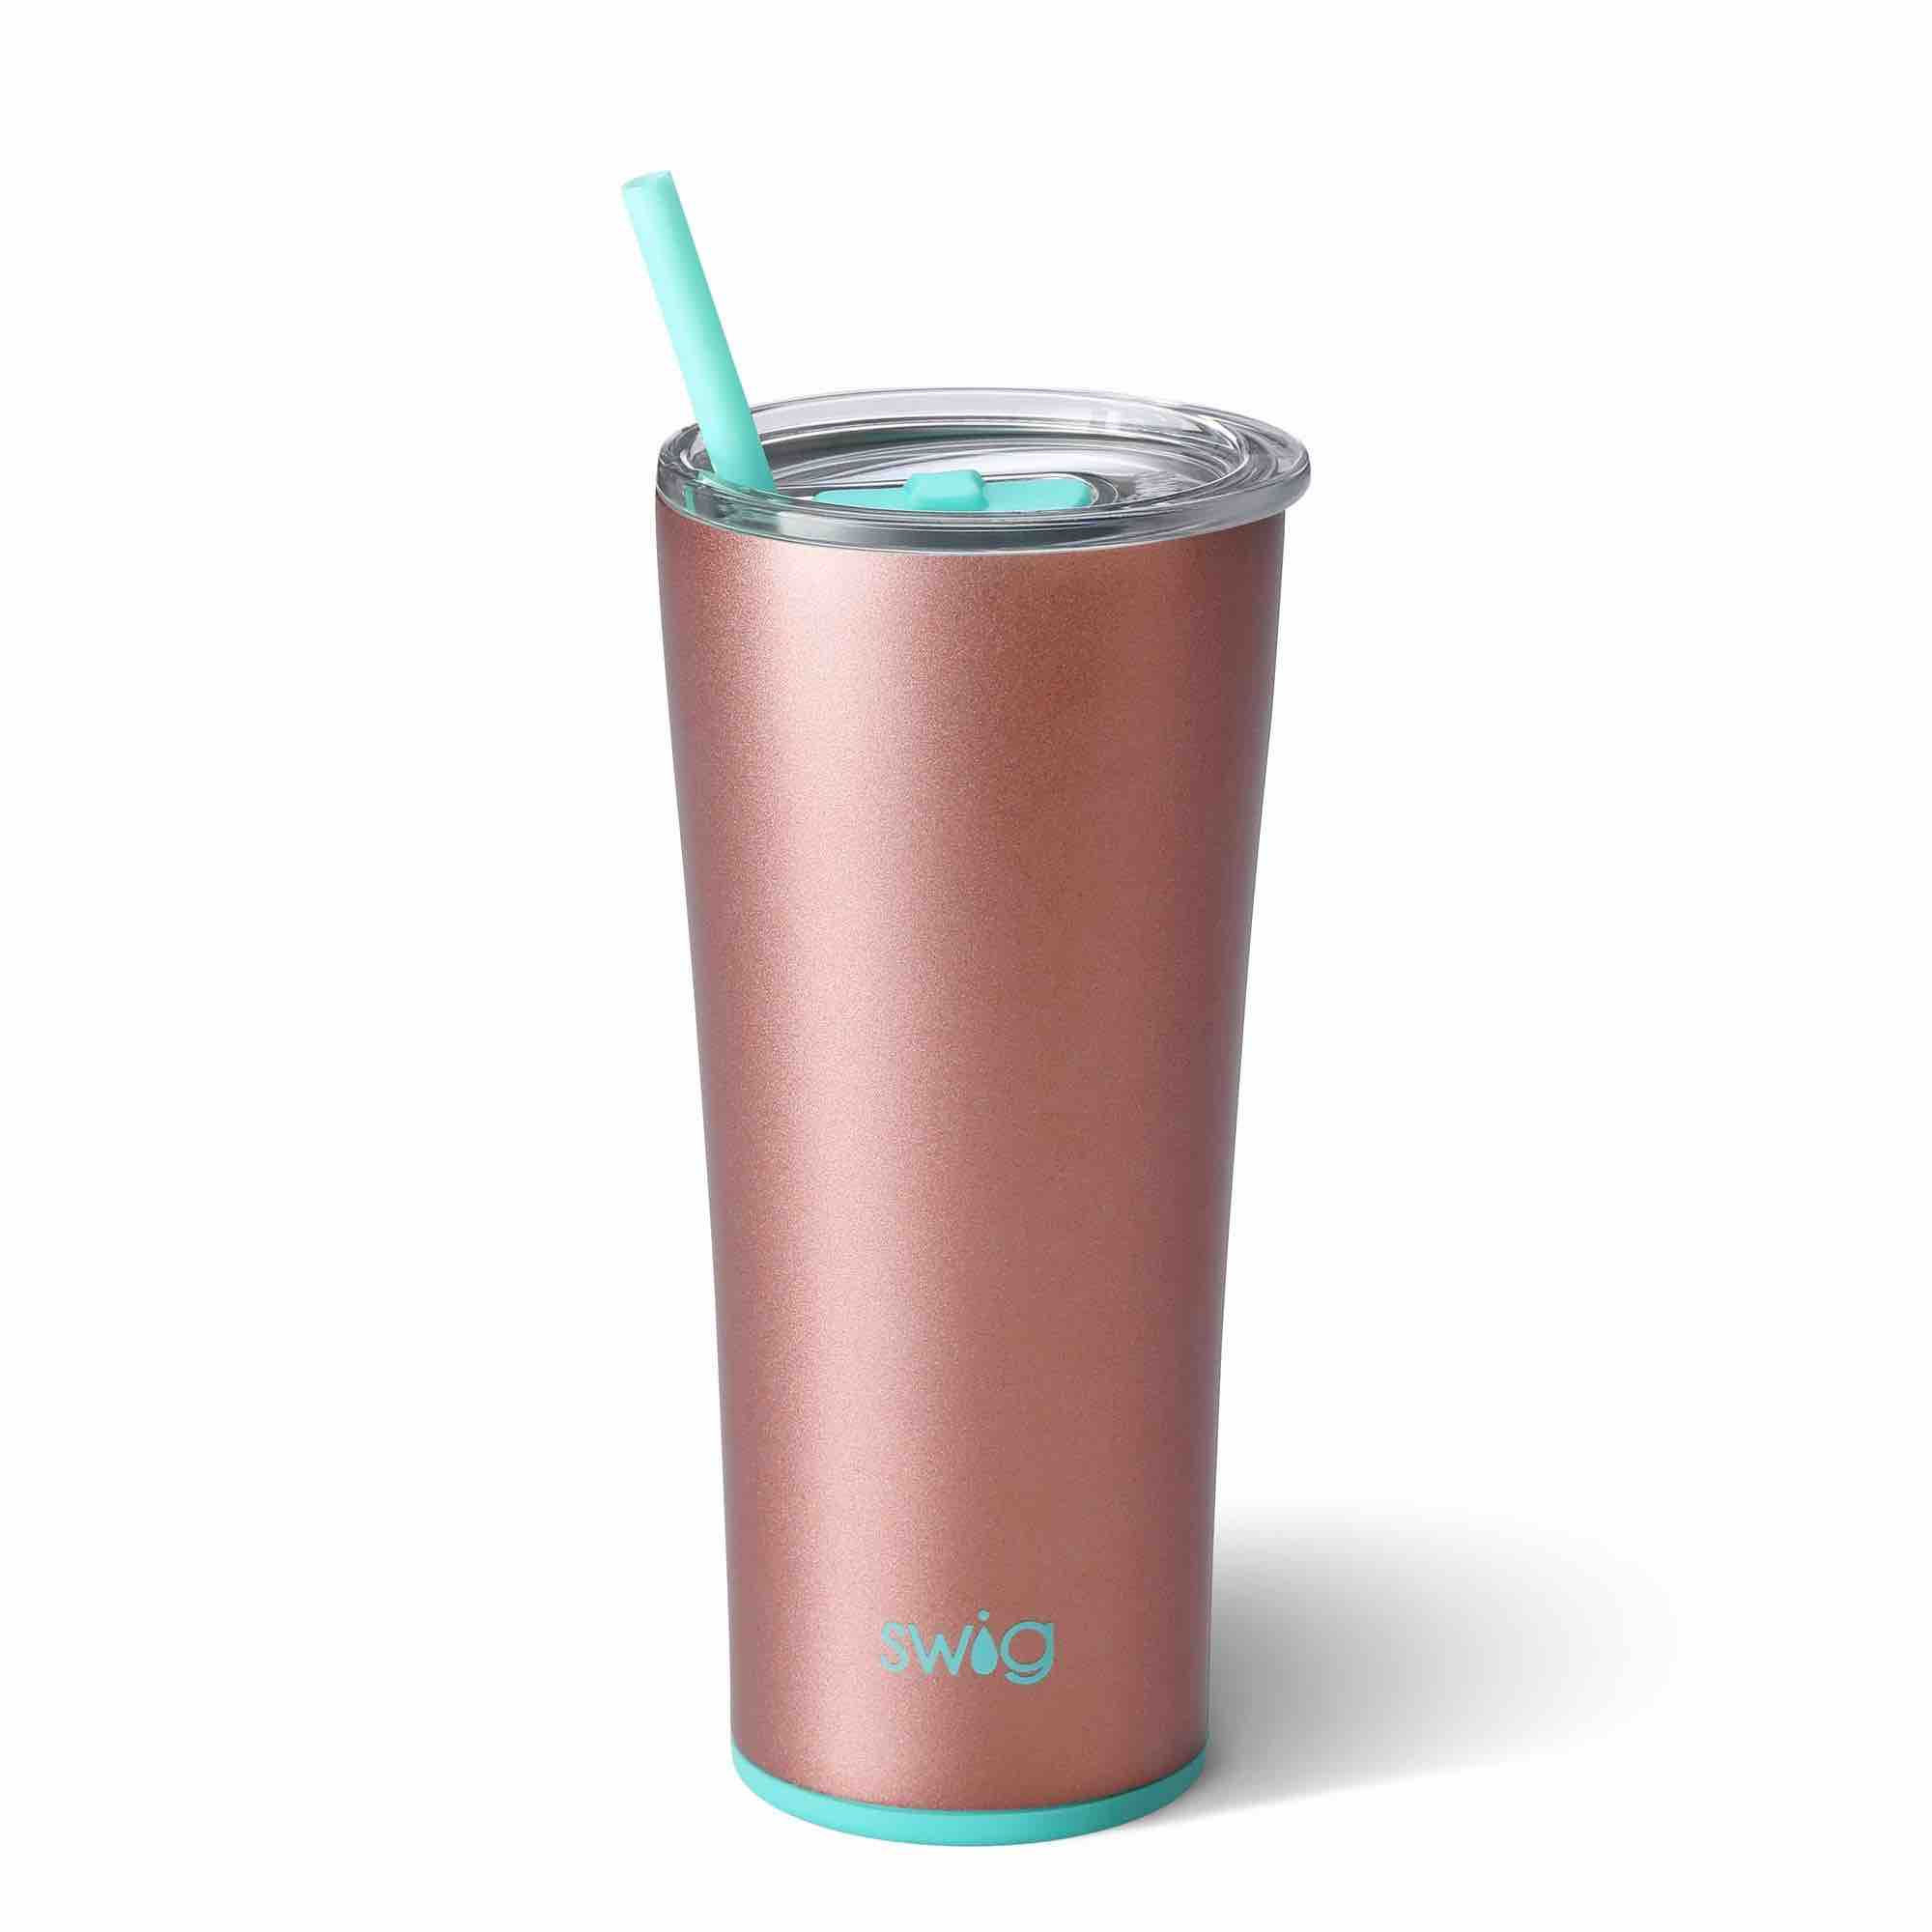 Swig Insulated Steel 22oz Tumbler | Rose Gold